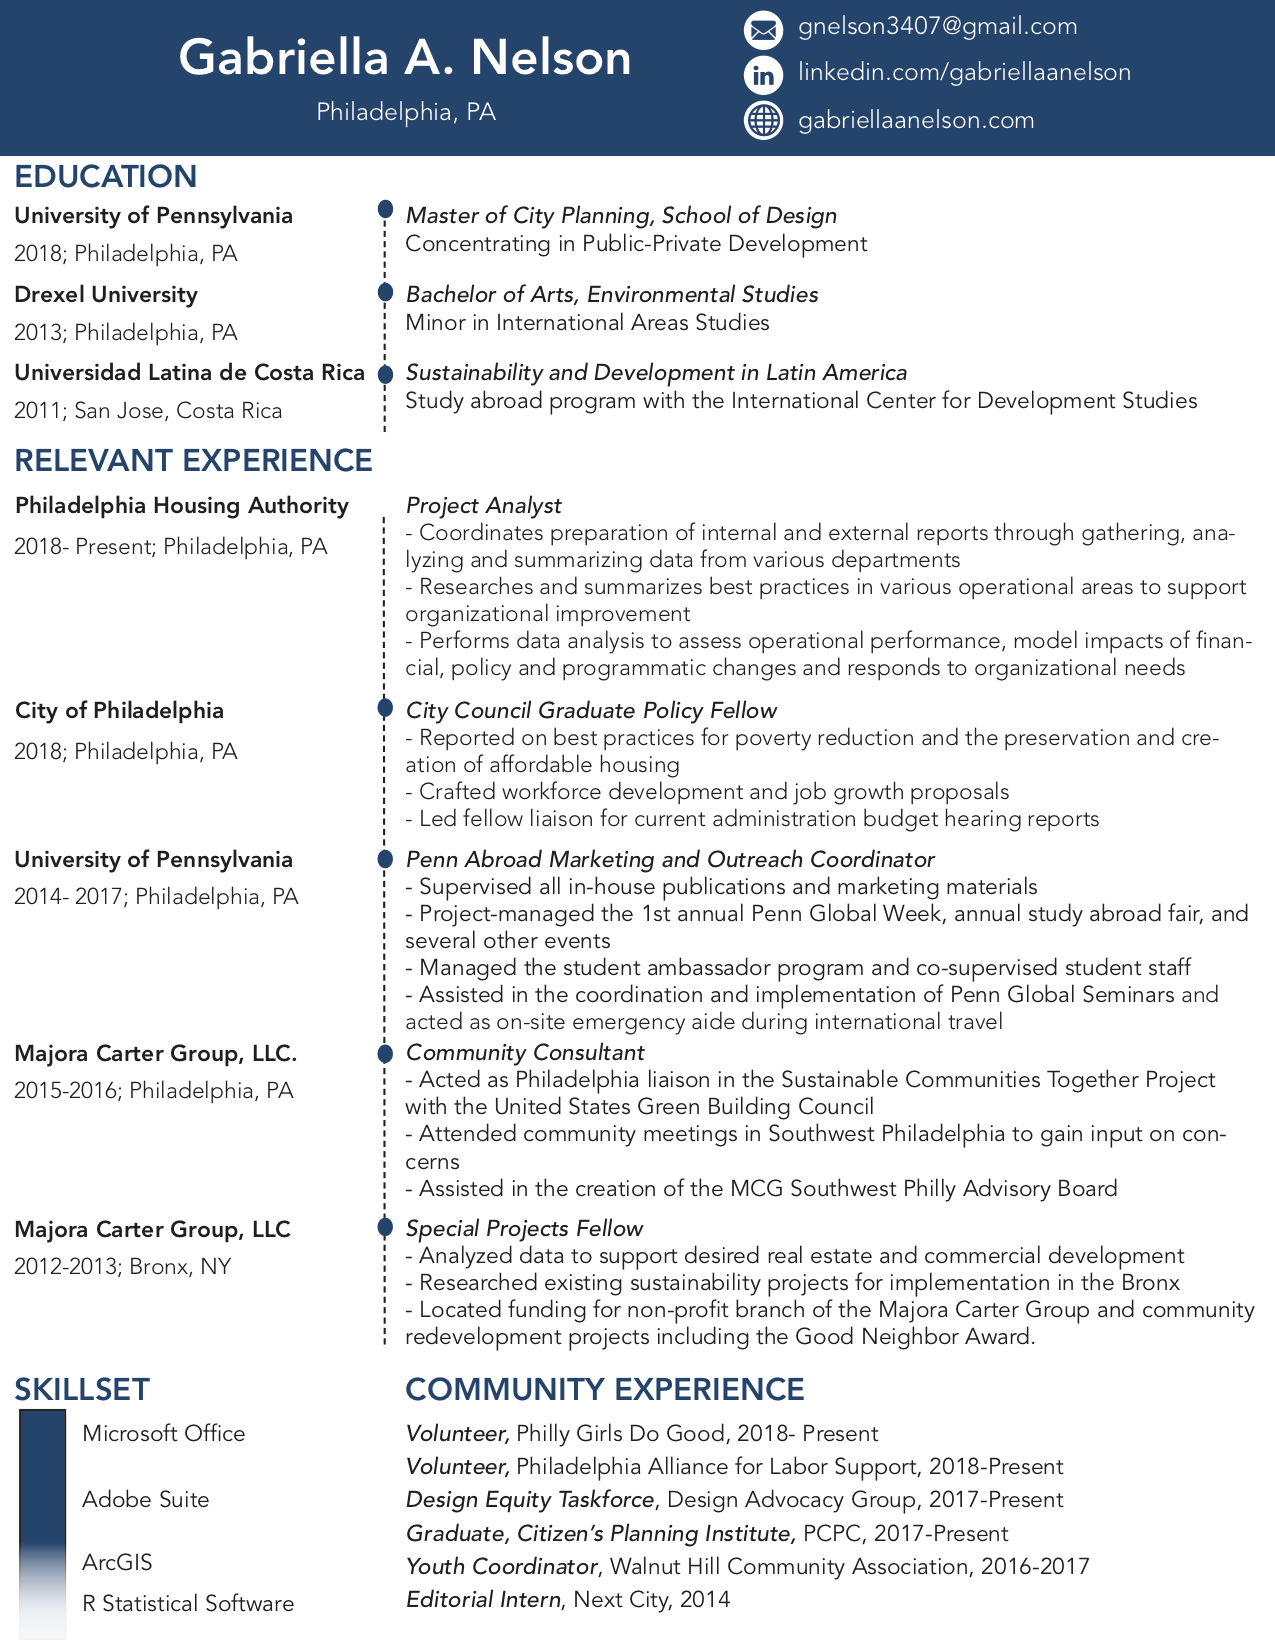 GabriellaANelson_Resume2018 copy.png